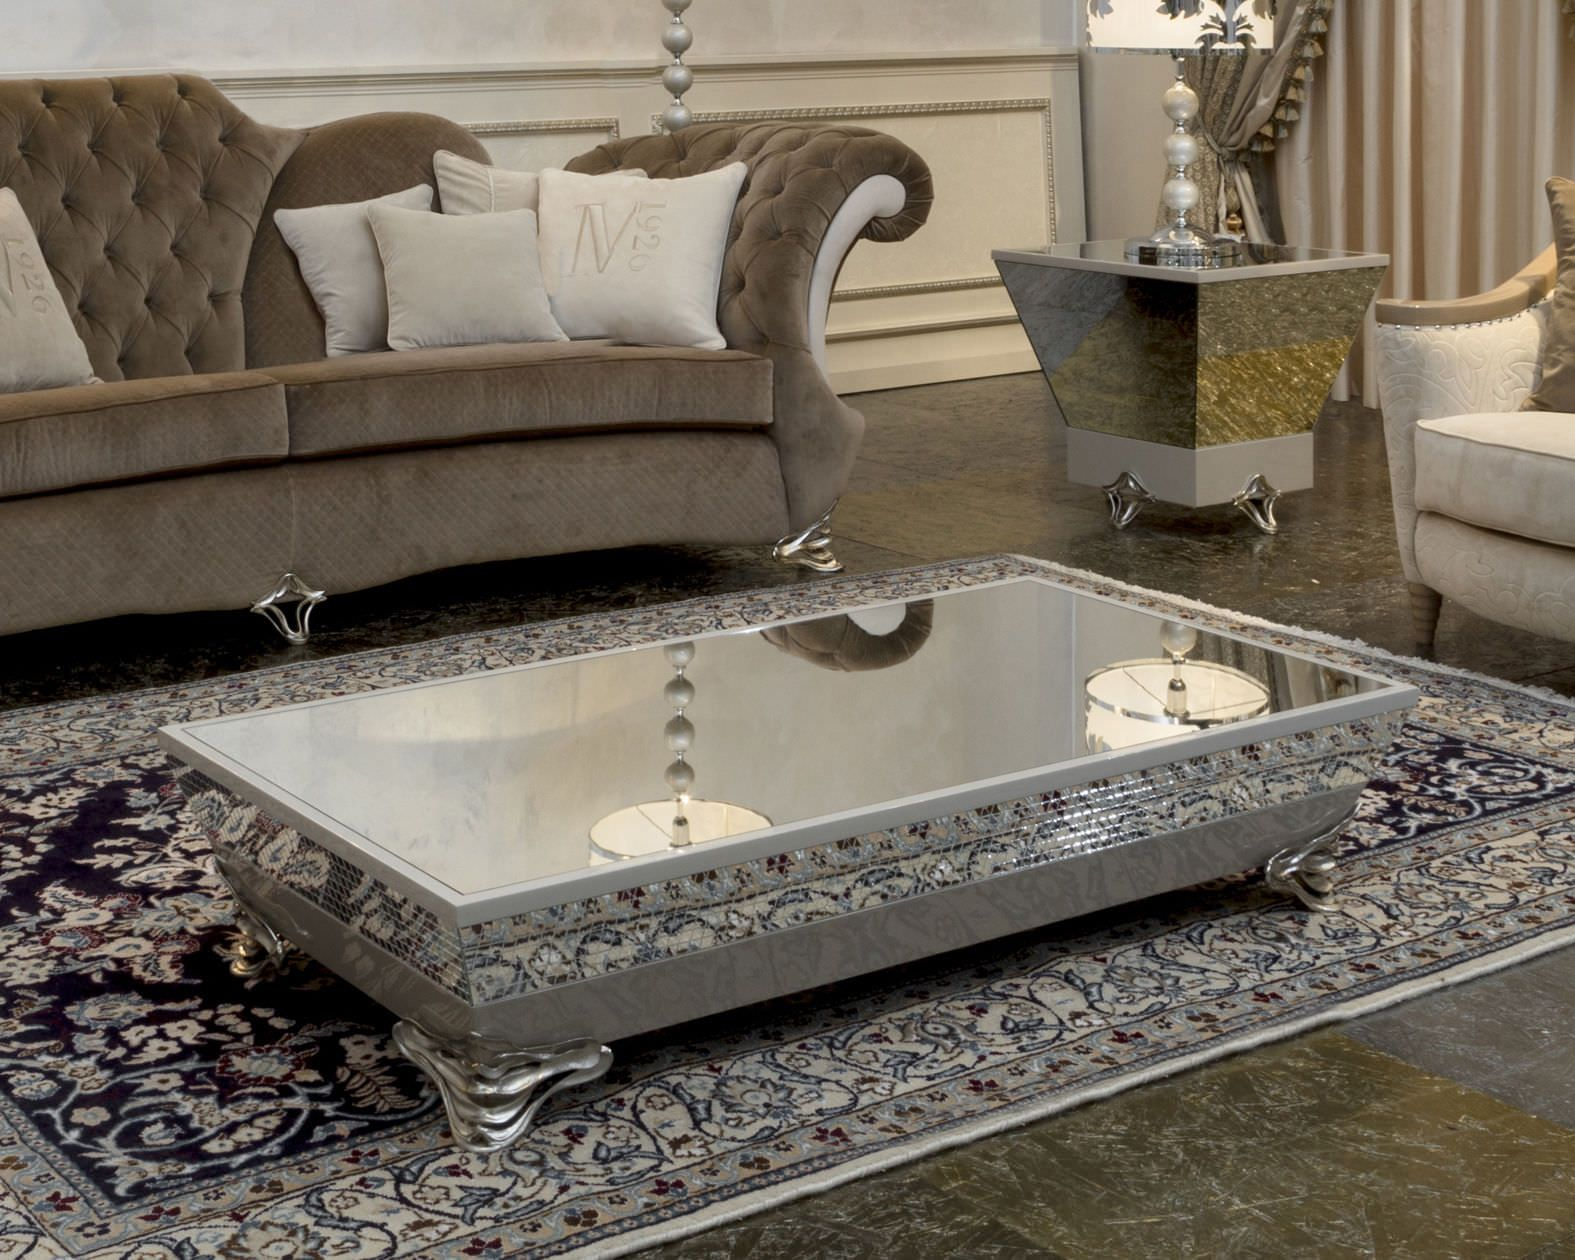 Luxury Mirrored Coffee Table Mirrored Coffee Tables Coffee Table Silver Living Room Table